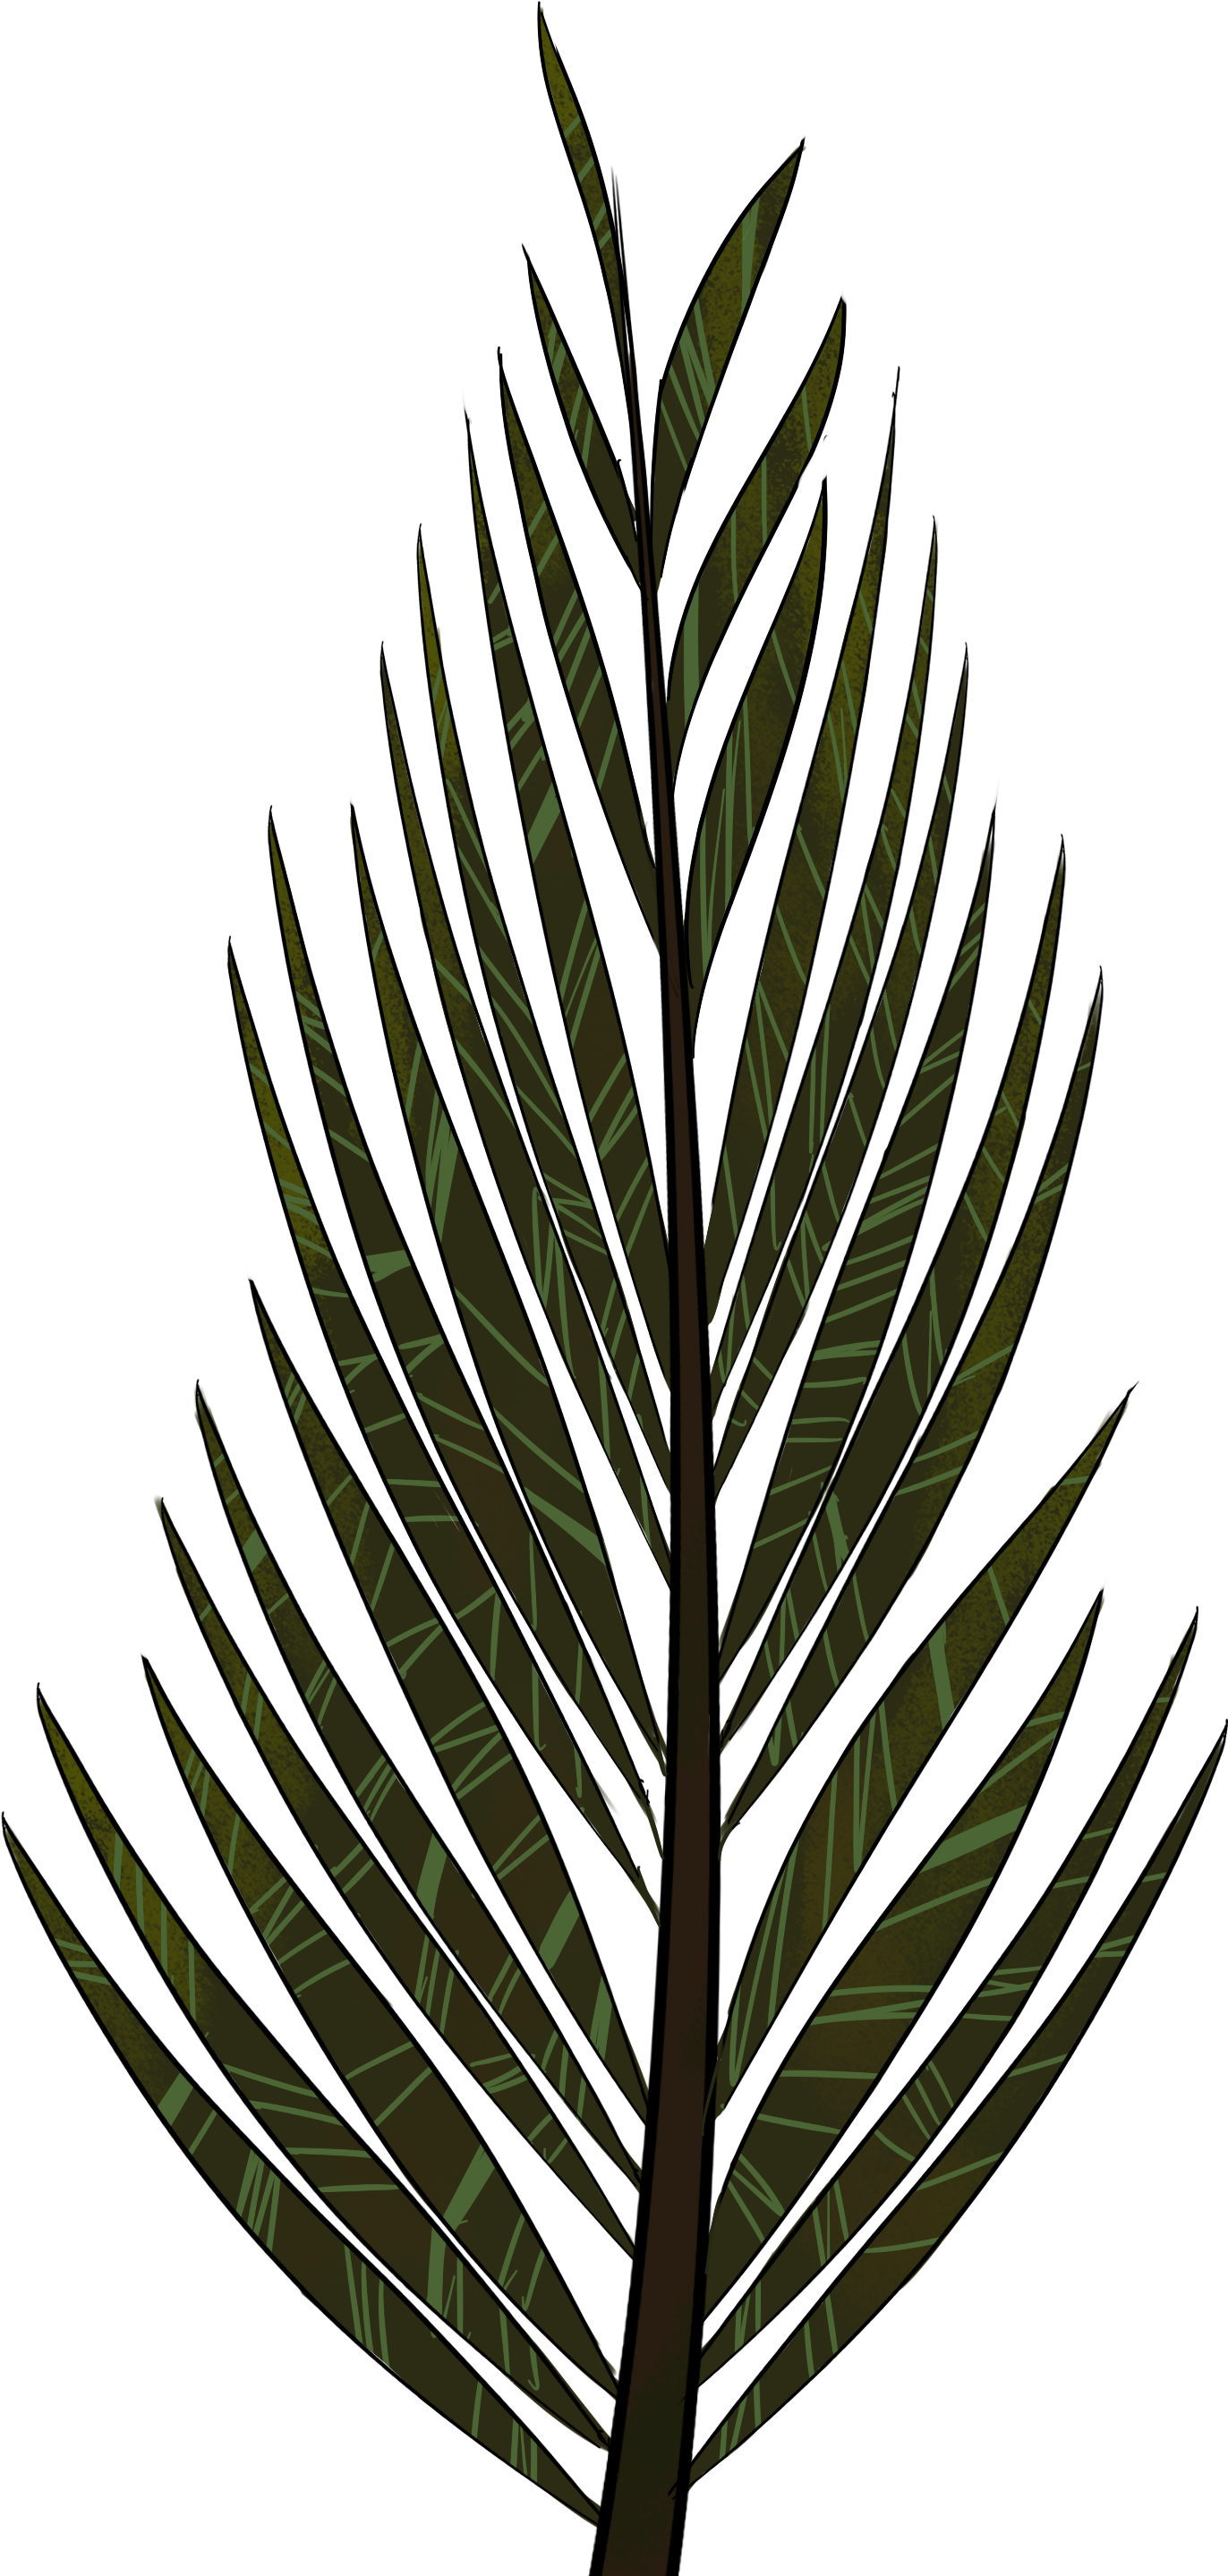 Transparent palm trees clipart - Pine Tree Clip Art Png - Pine Tree Leaves Drawing